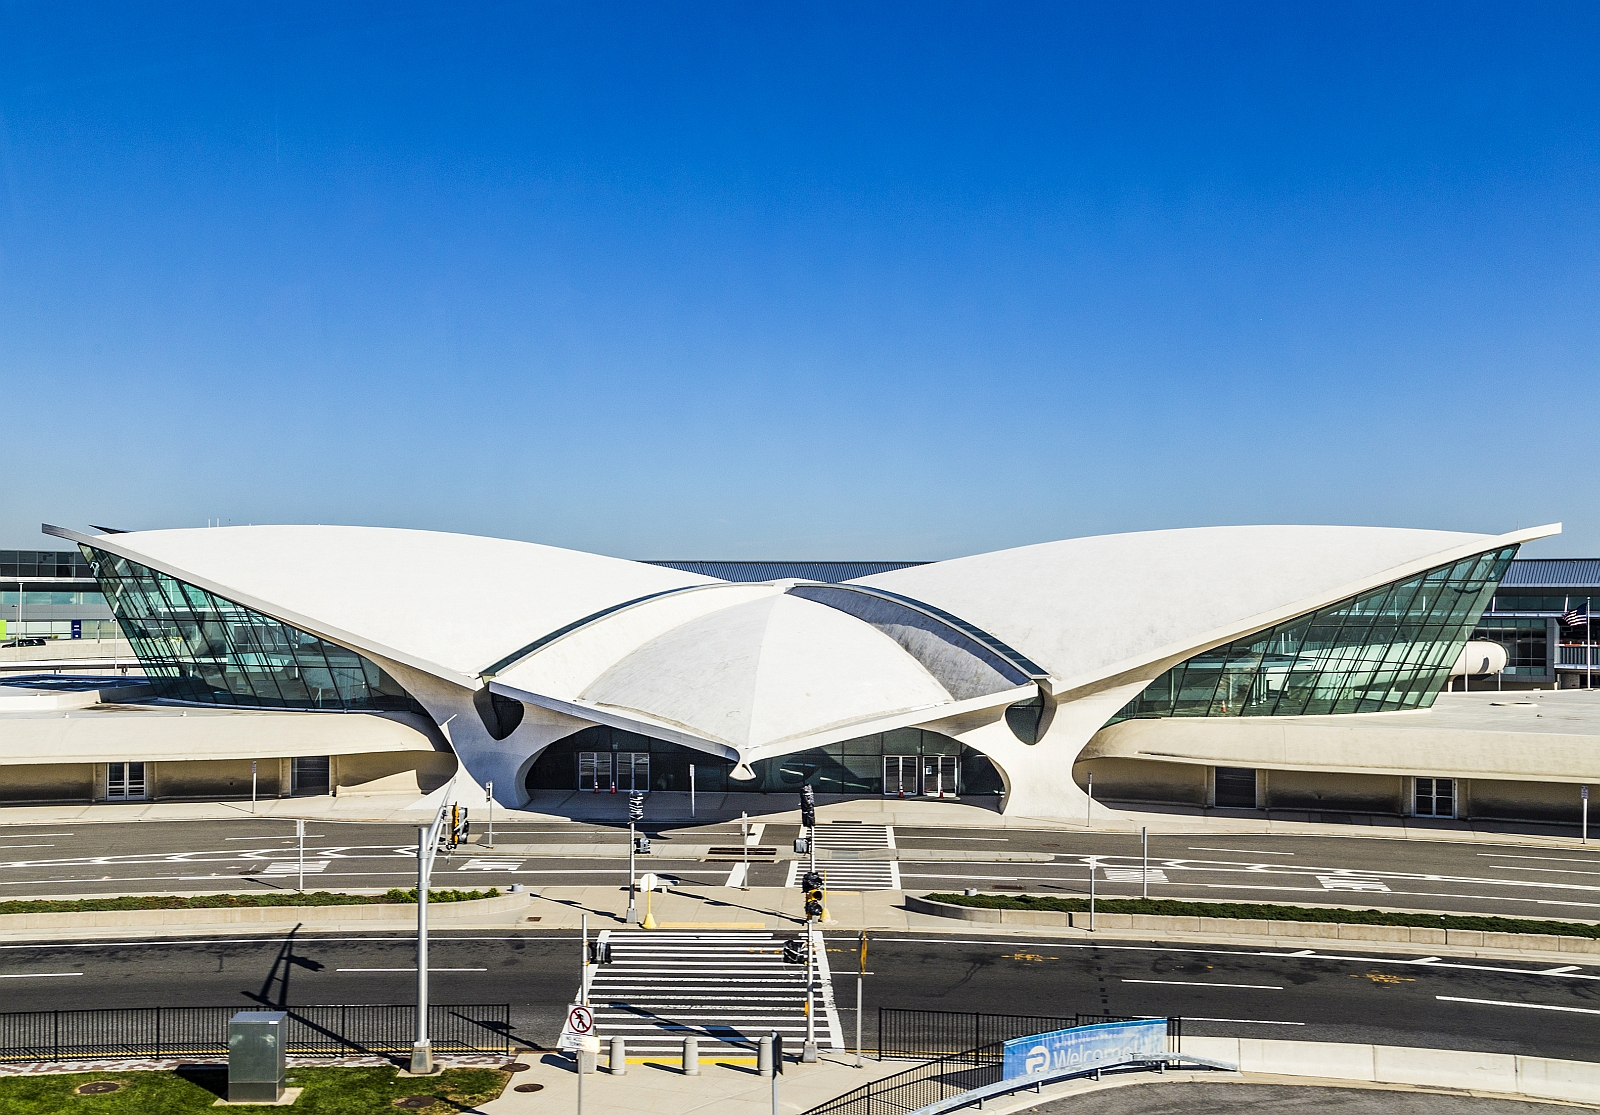 Twa terminal am new yorker jfk airport wird luxushotel for Hotels near jf kennedy airport